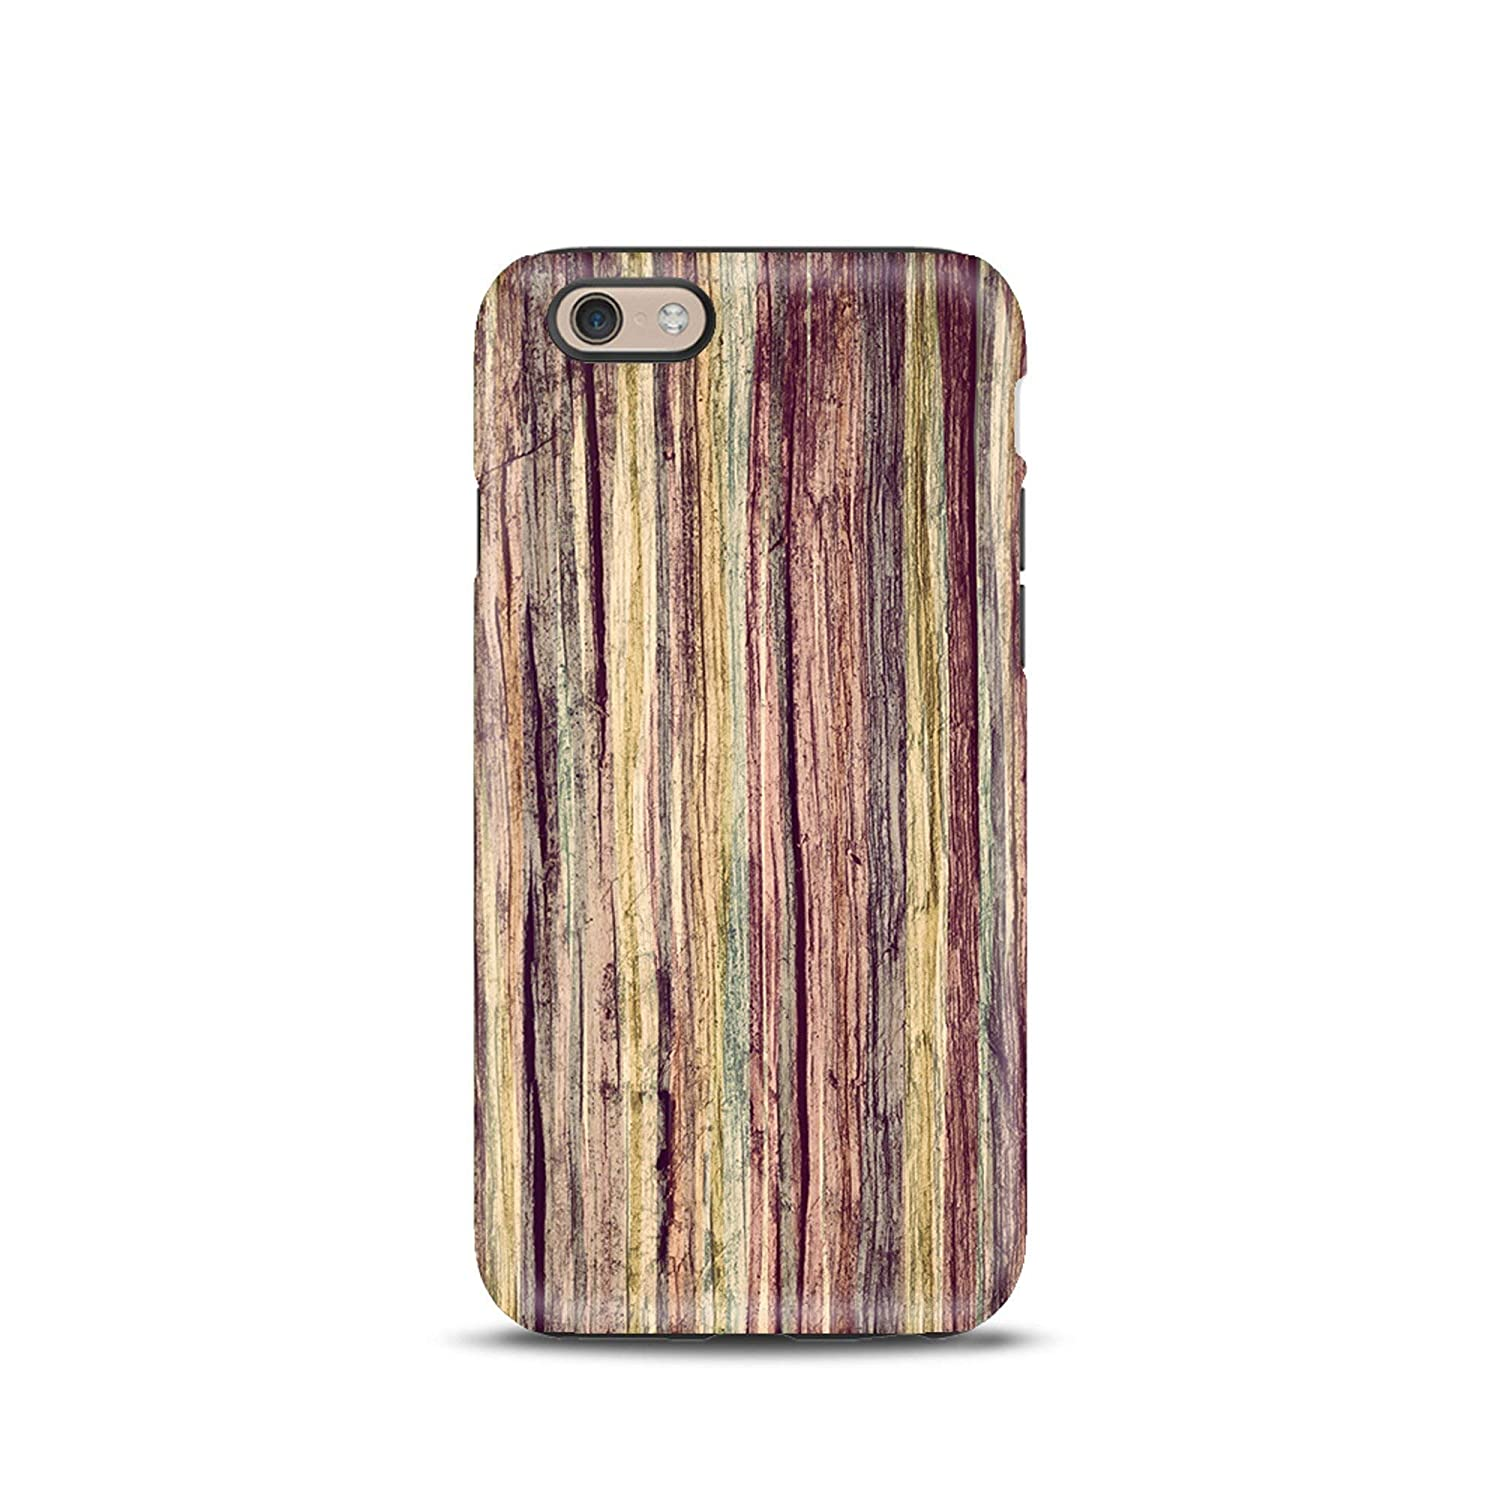 Legno Pastello cover case custodia per iPhone 5, 5s, 6, 6s, 7, 7 plus, 8, 8 plus, X, XS, per Galaxy S6, S7, S8